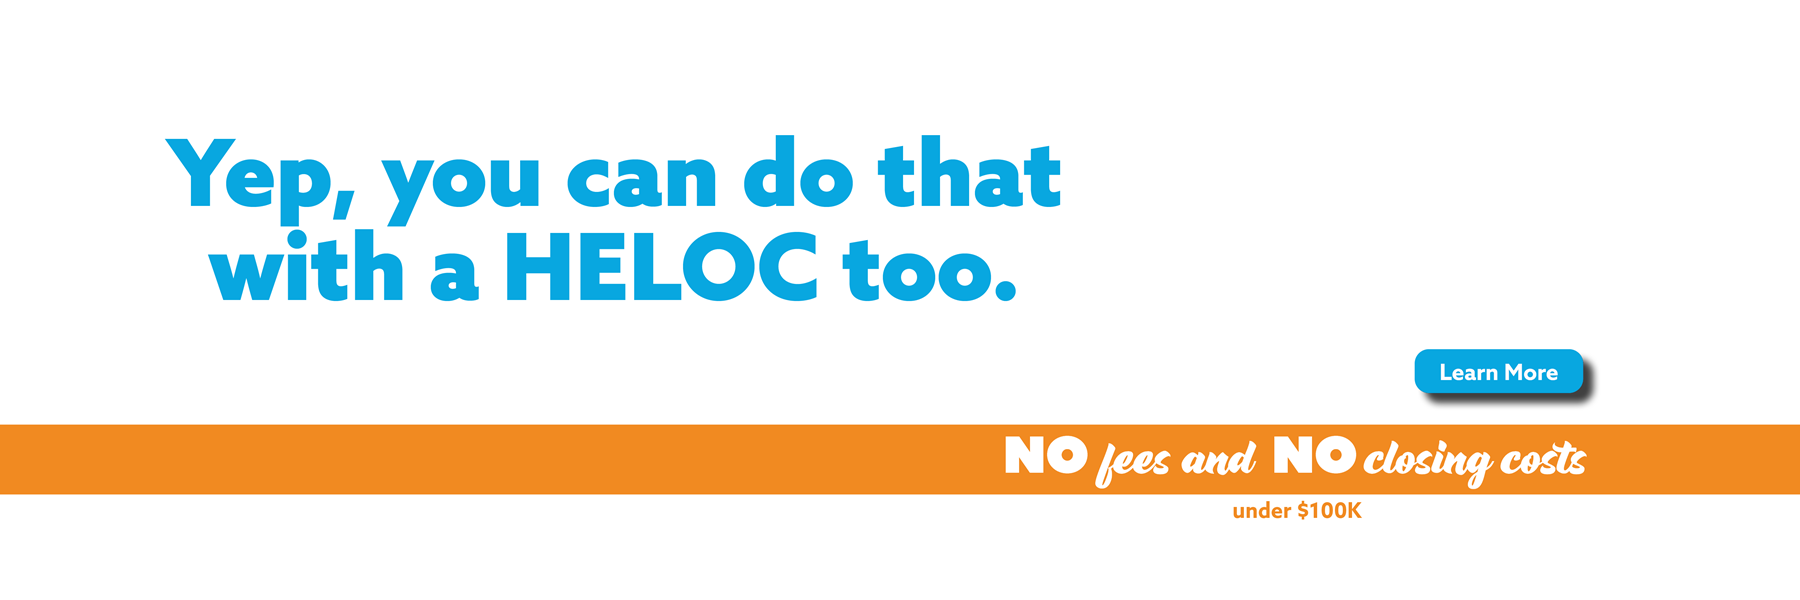 Find out what else you can do with a HELOC!